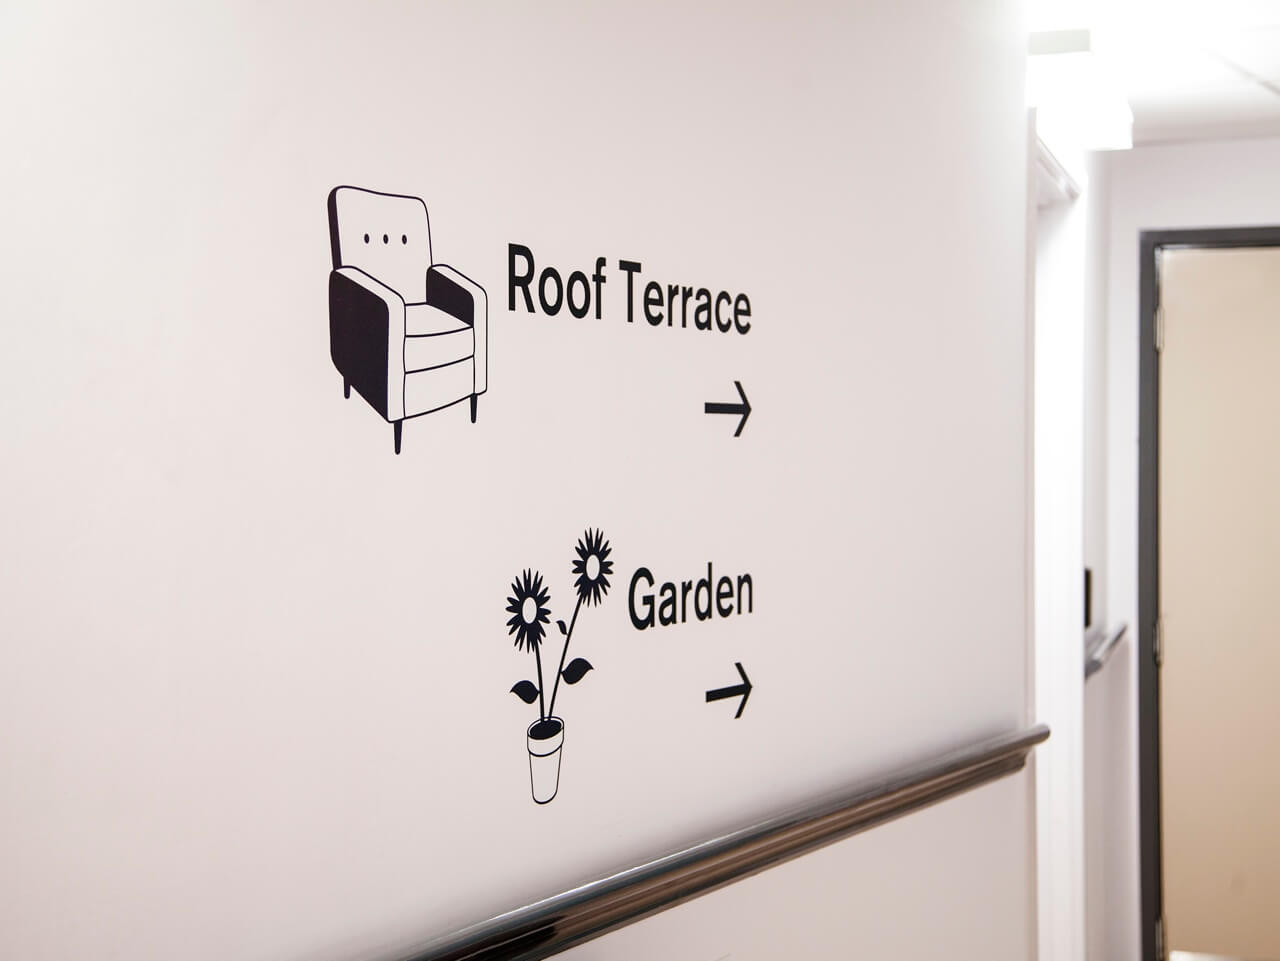 Pictograms and directional signage at Haven Court in a wayfinding scheme for people living with dementia